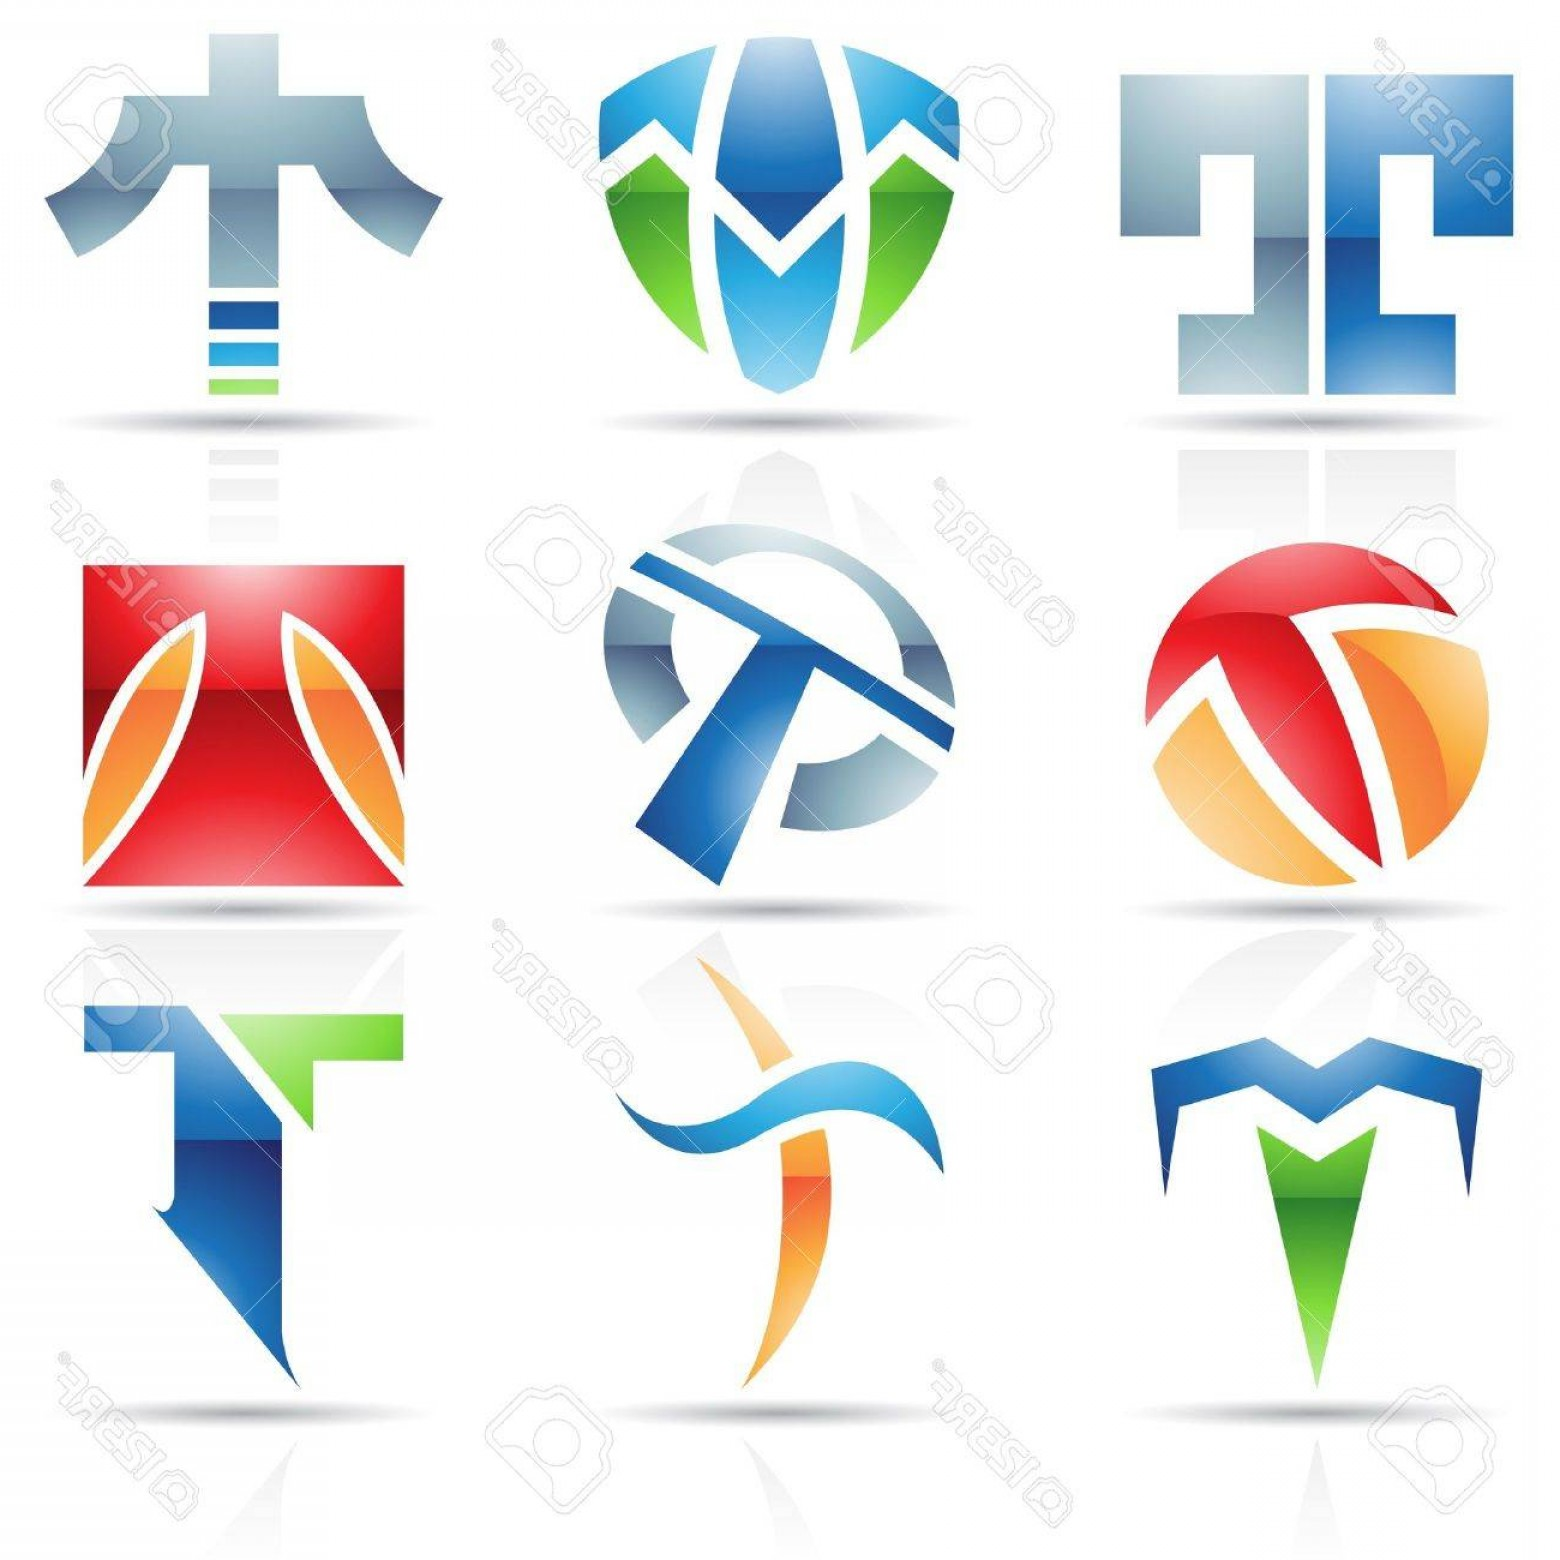 T Vector: Photovector Illustration Of Abstract Icons Based On The Letter T